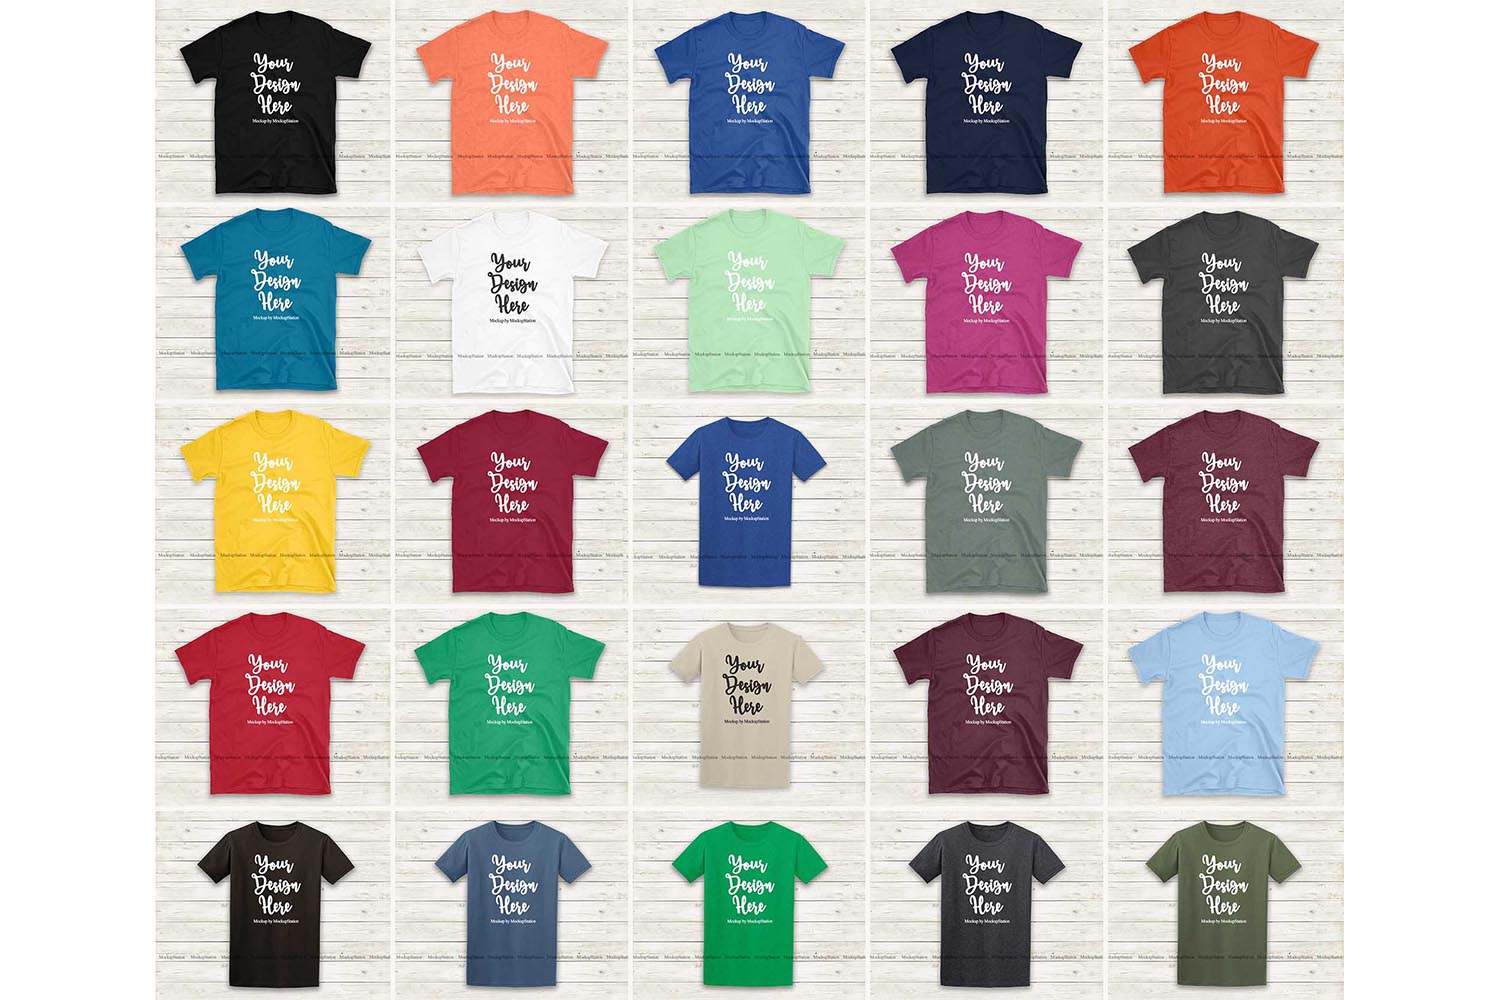 Tshirt Mockup Bundle 25 Colors Gildan 64000 Shirt Flat Lay example image 2